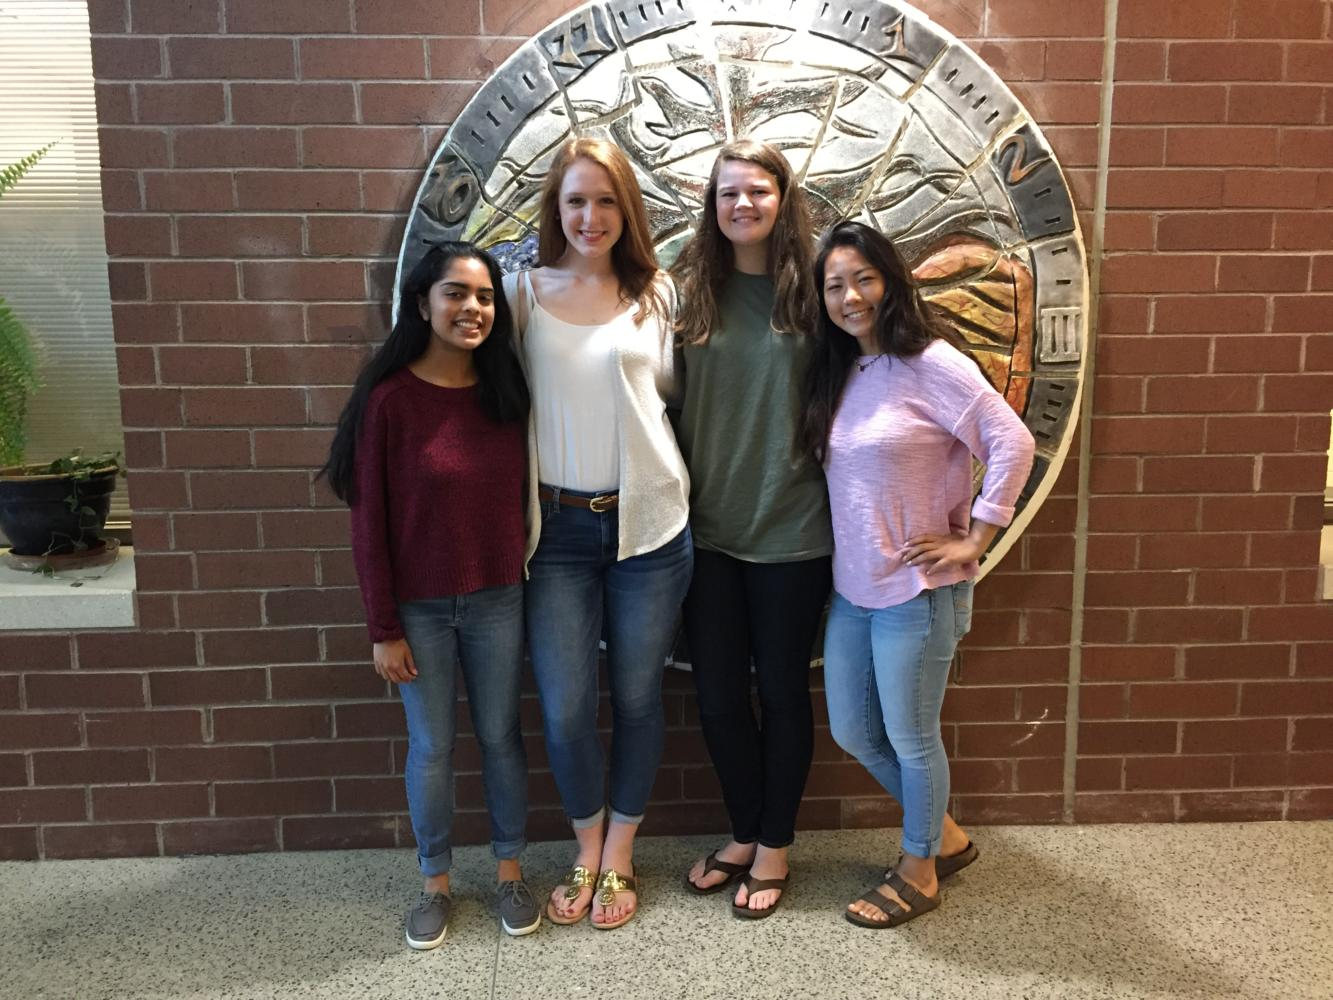 2017 Girls State participants: Joitree Alam, Brooke Bailey, Sarah Harkness, Joy Li